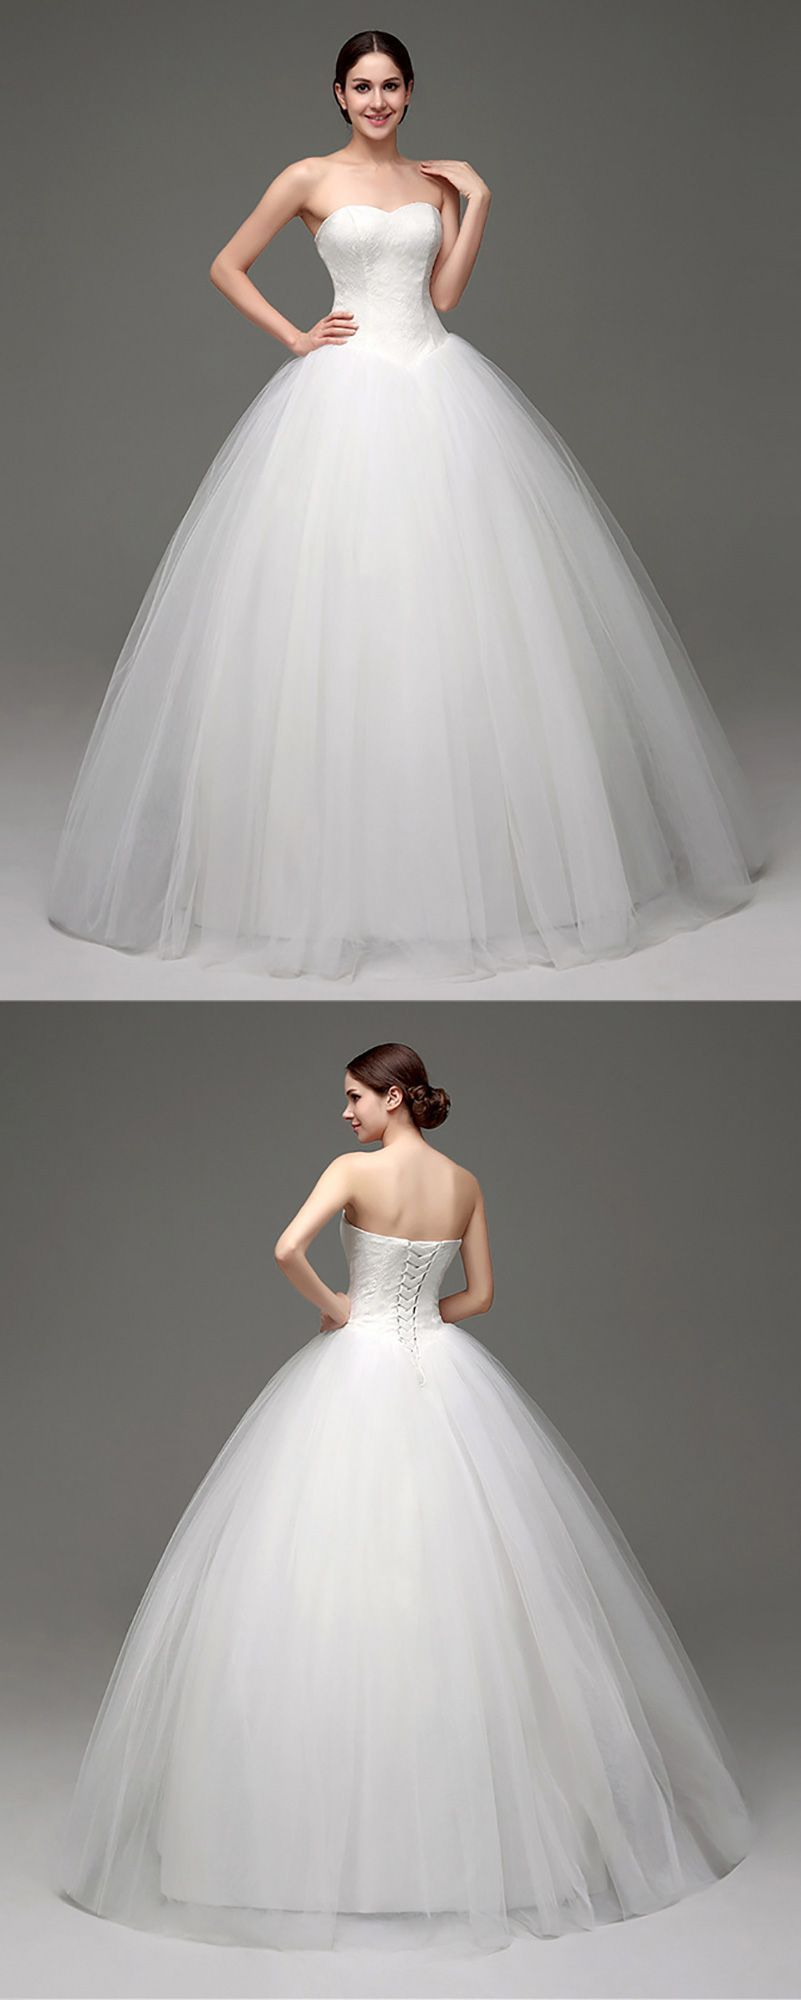 Only $138.99, Ball Gown Wedding Dresses Cheap Simple Strapless ...